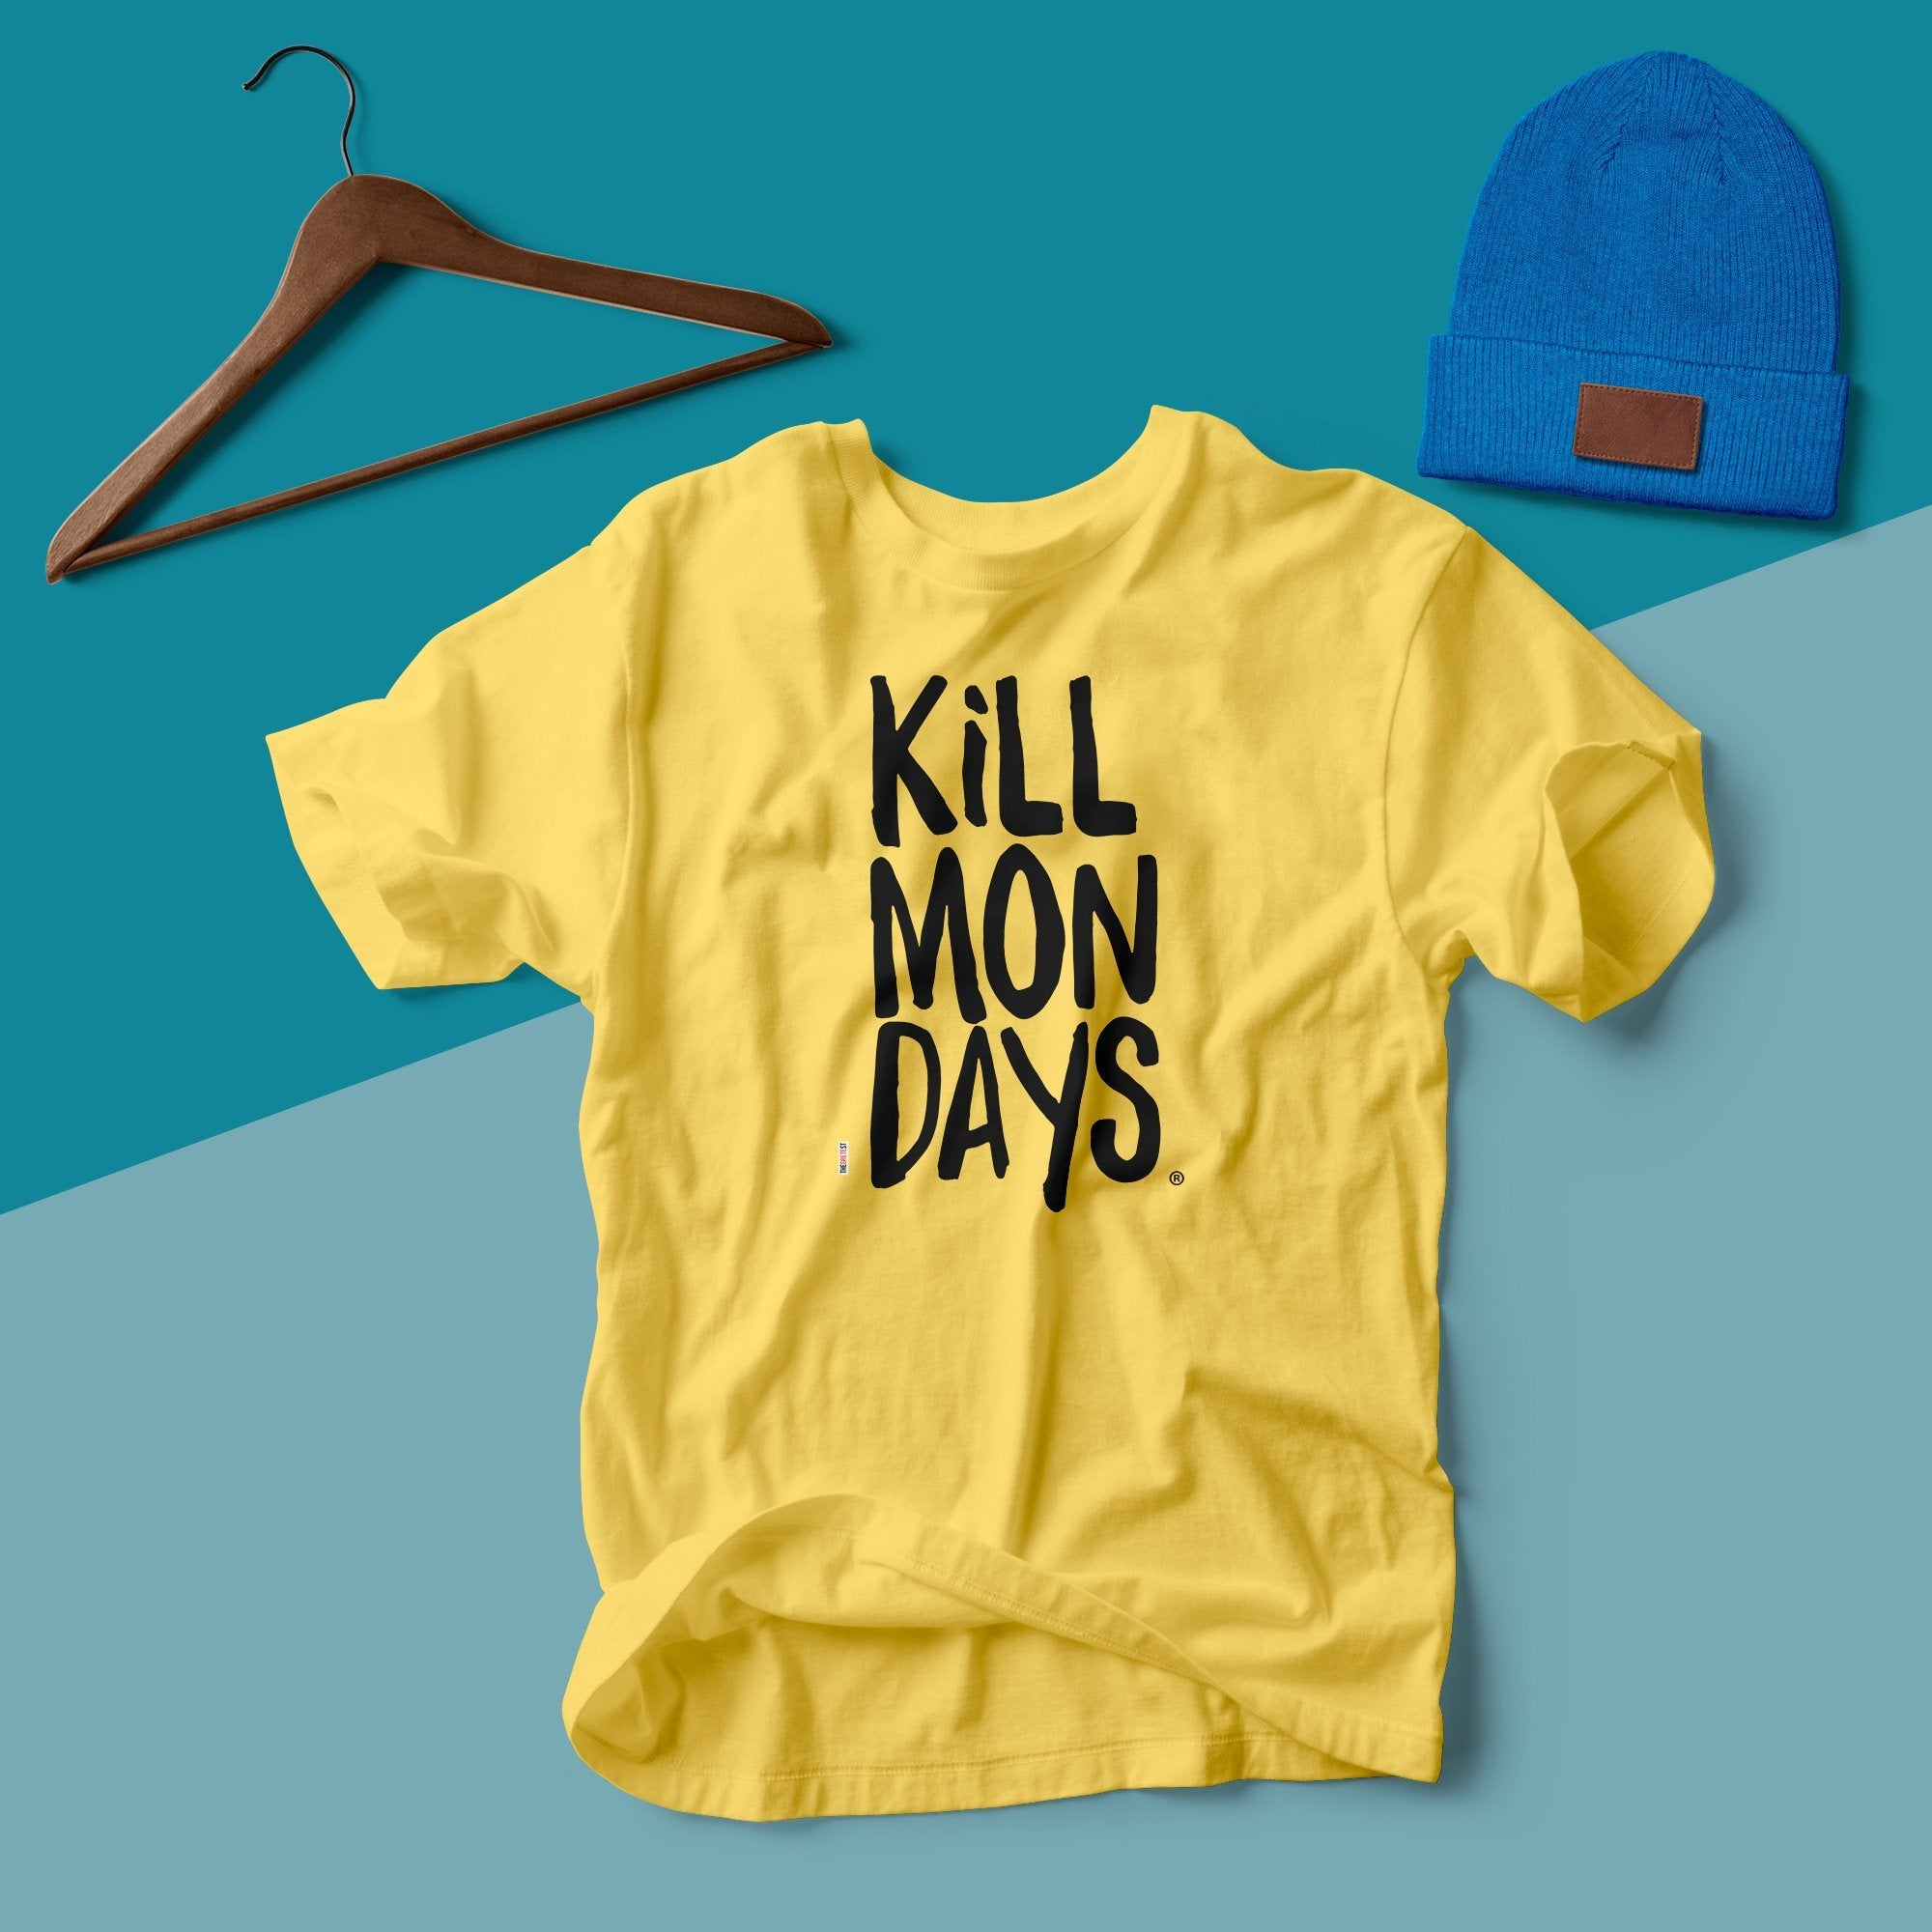 Kill Mondays T-shirt - Kill Mondays Tee-TheGretest